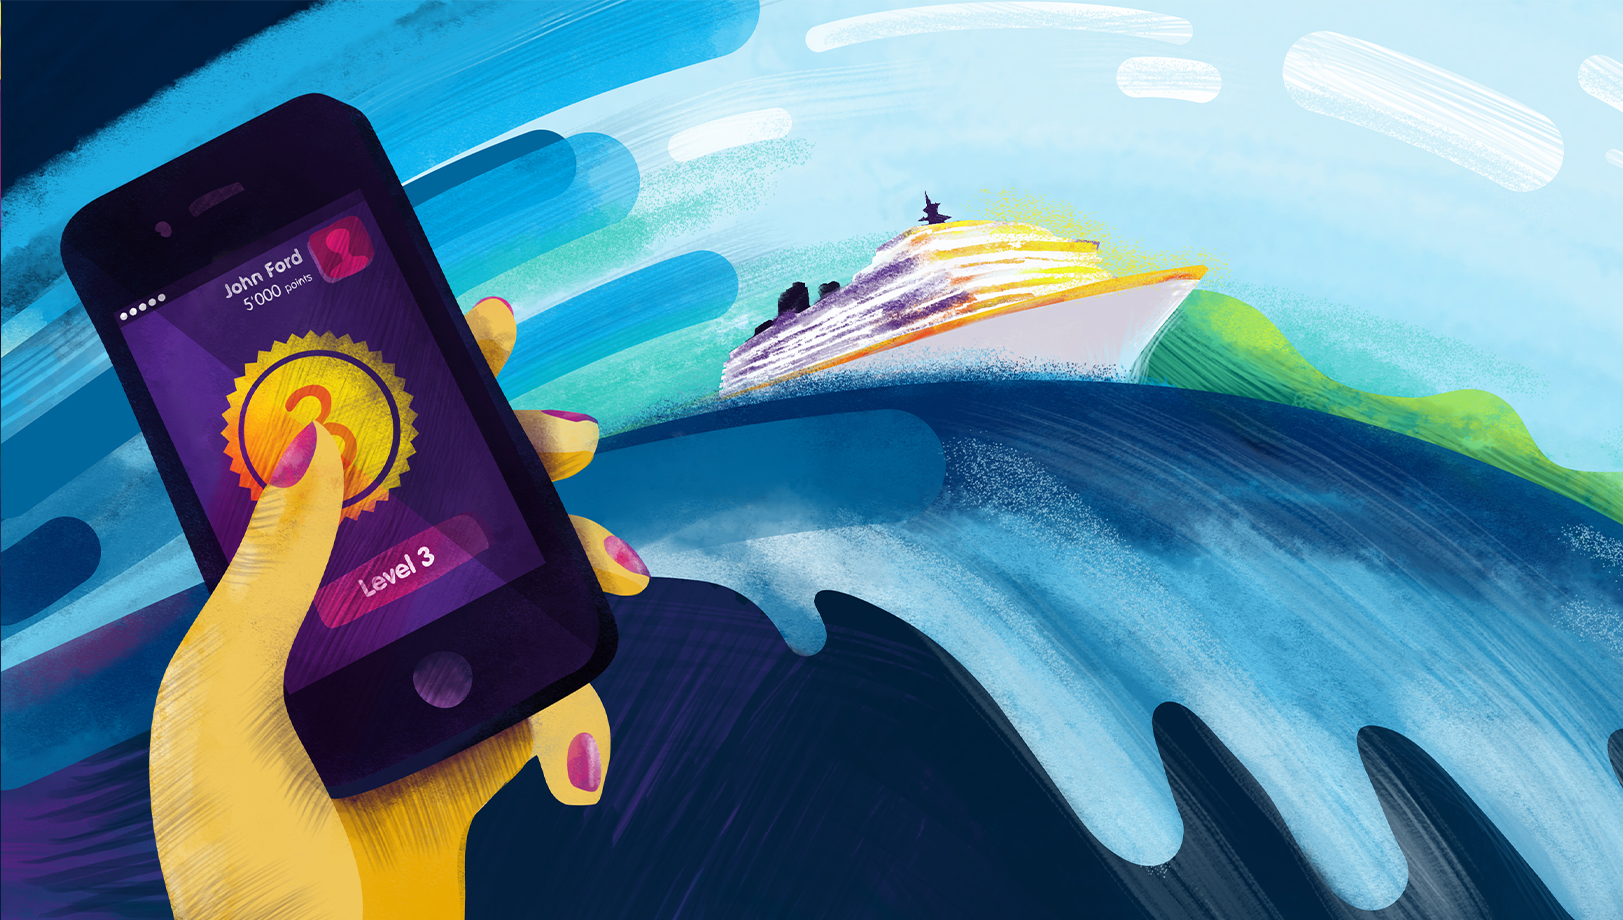 Styleframe detail for animated TV commercial: Smart phone and cruise ship